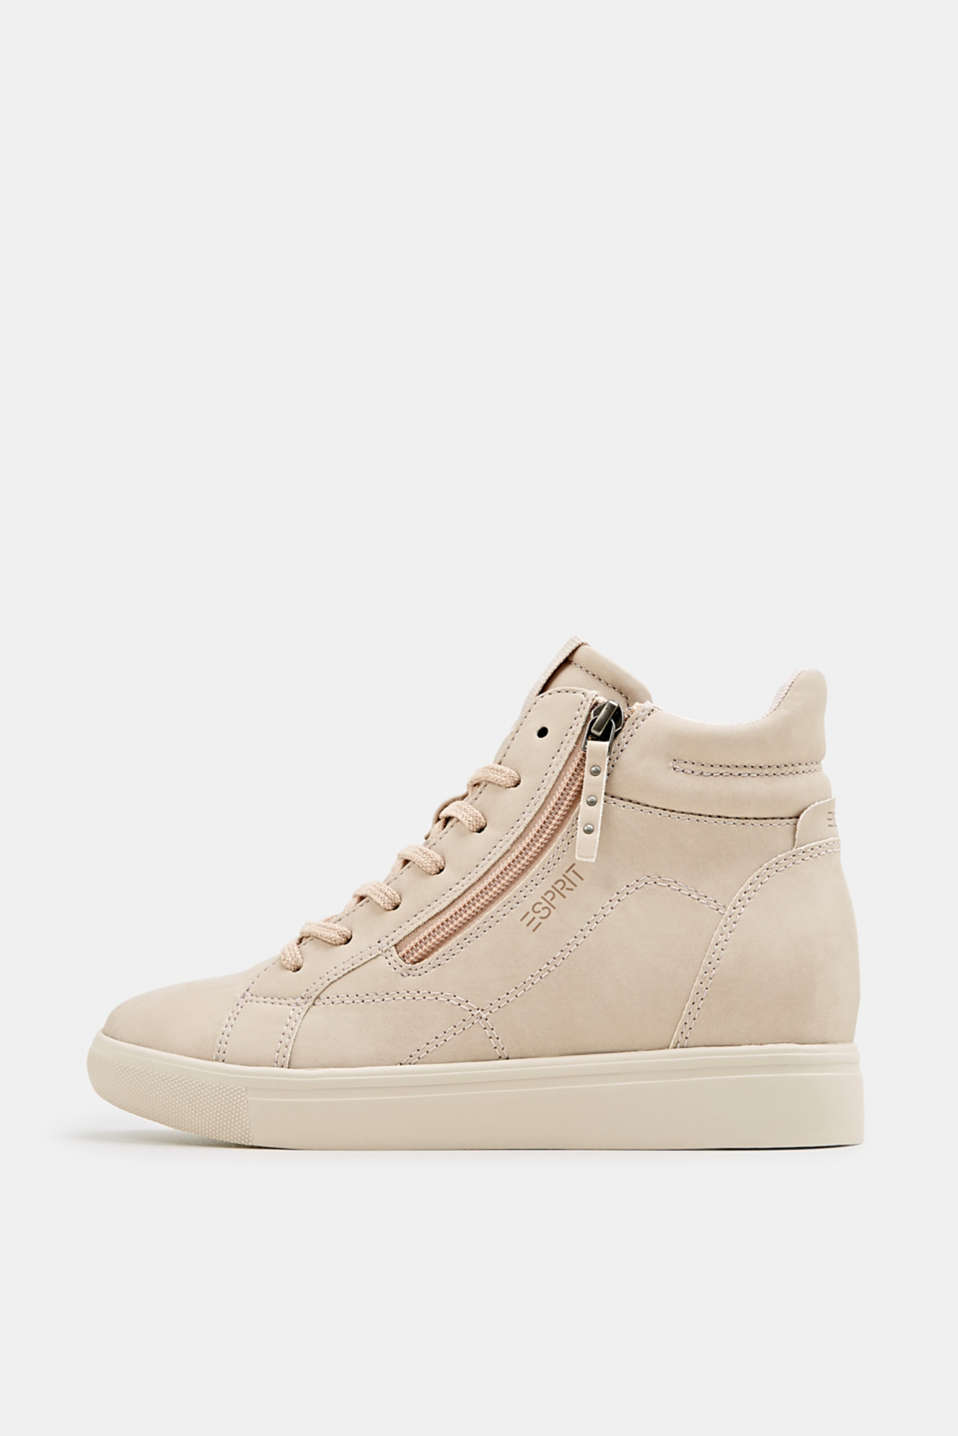 Esprit - Wedge-Sneaker in Nubuk-Optik